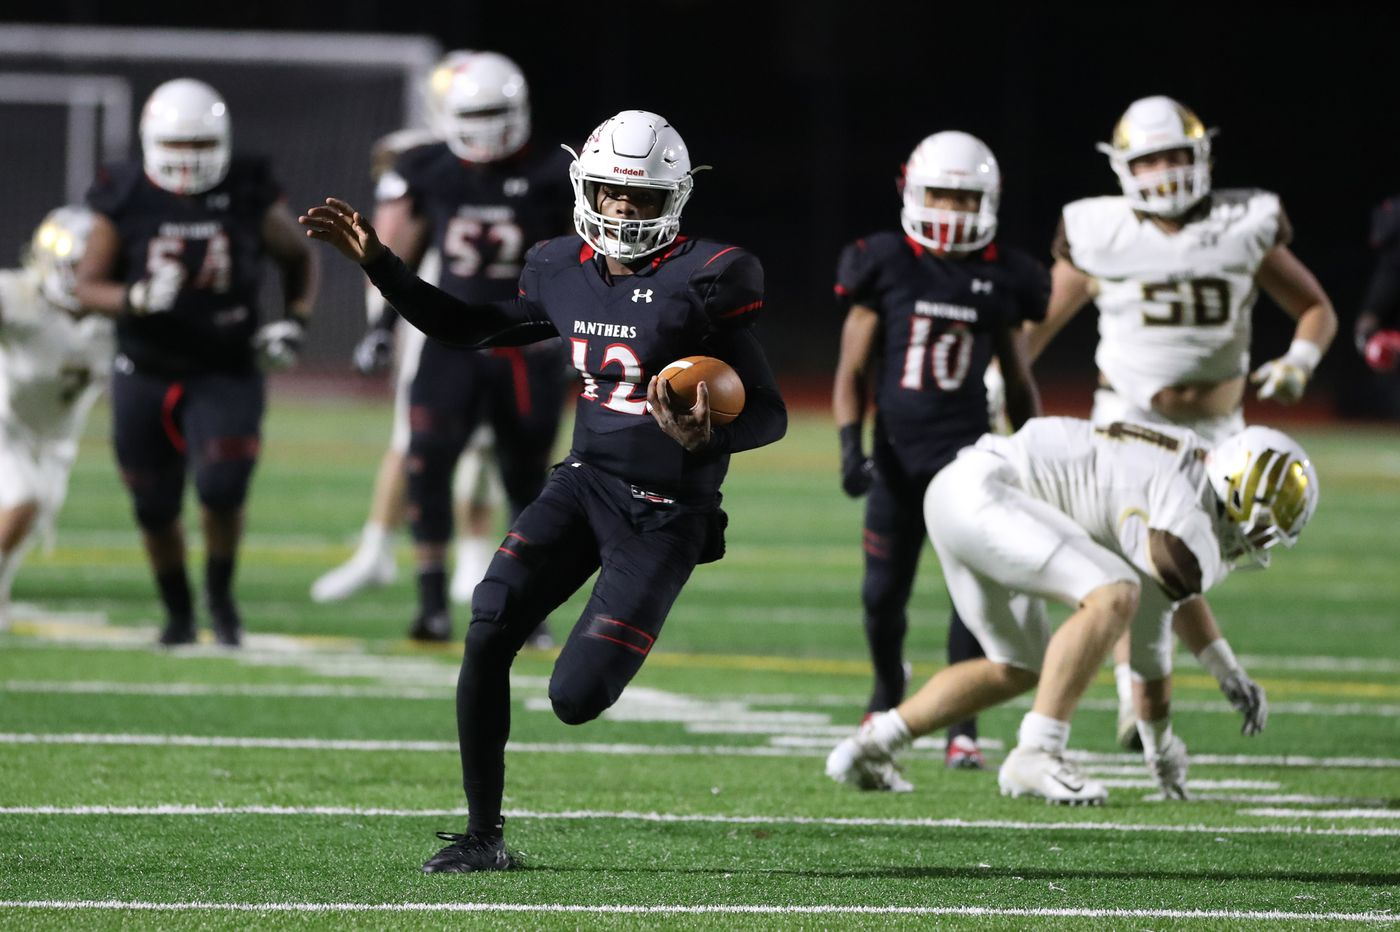 Imhotep Charter and Cathedral Prep to clash again for PIAA state championship